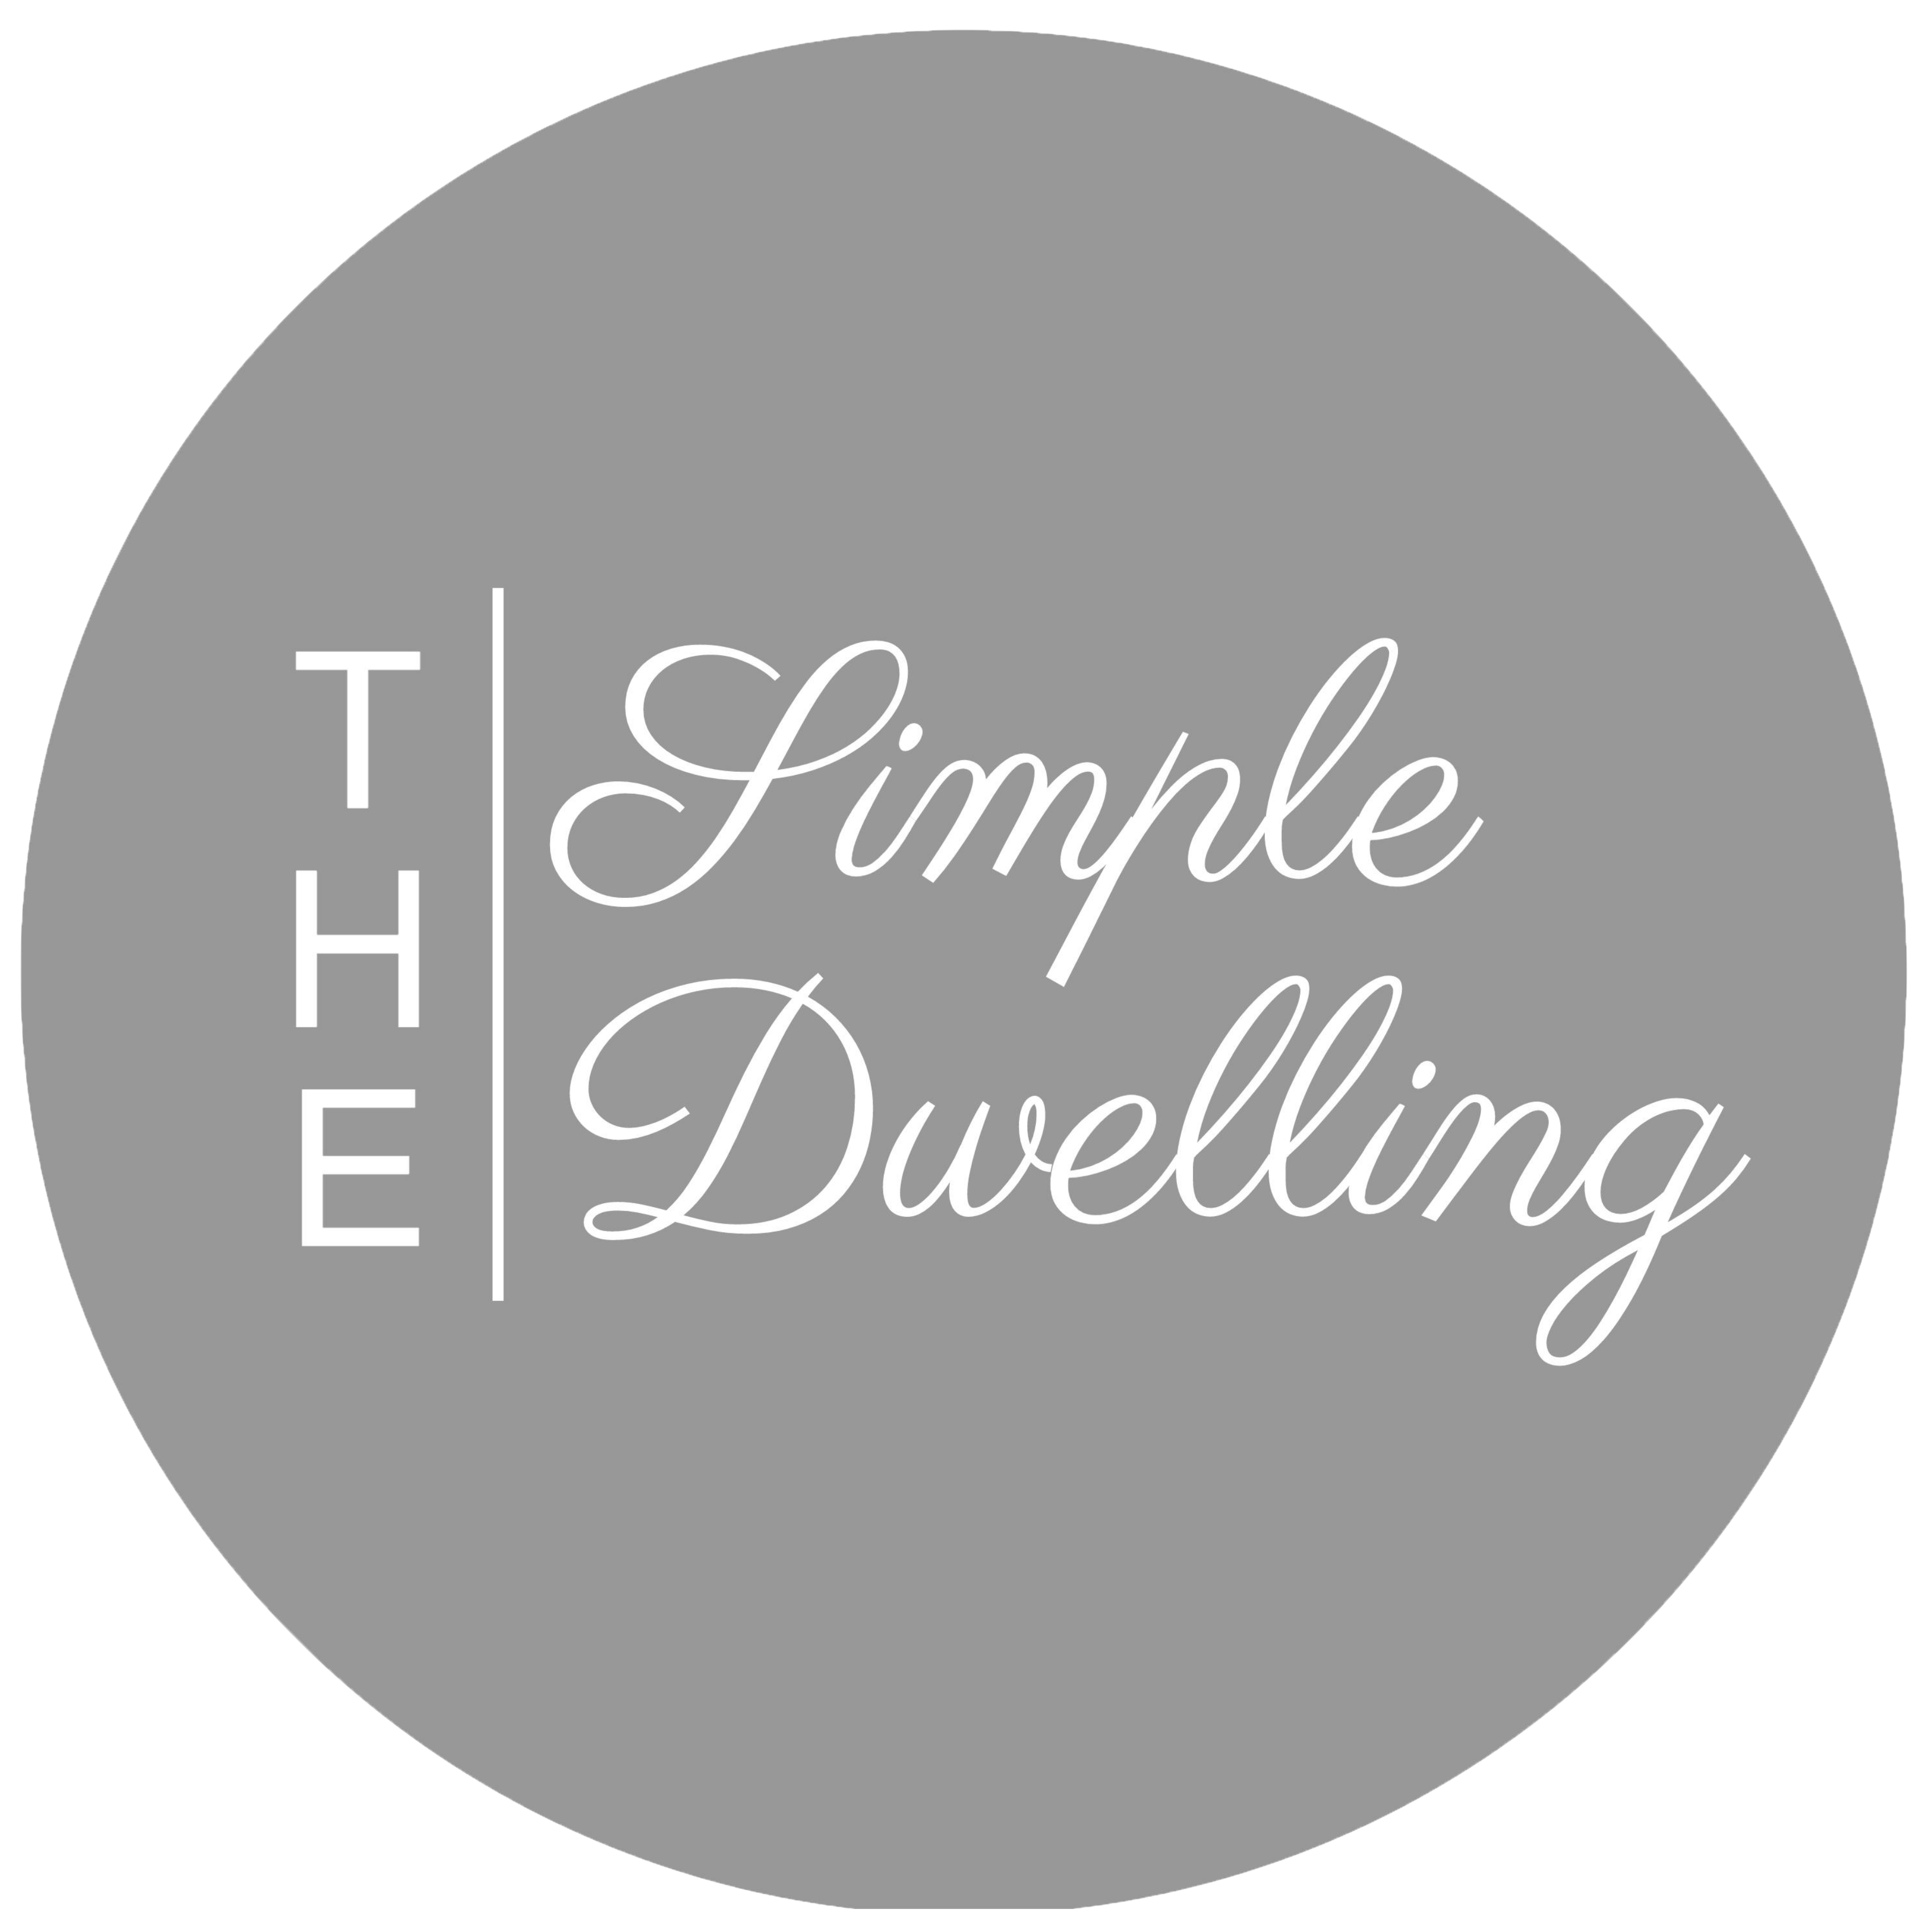 thesimpledwelling